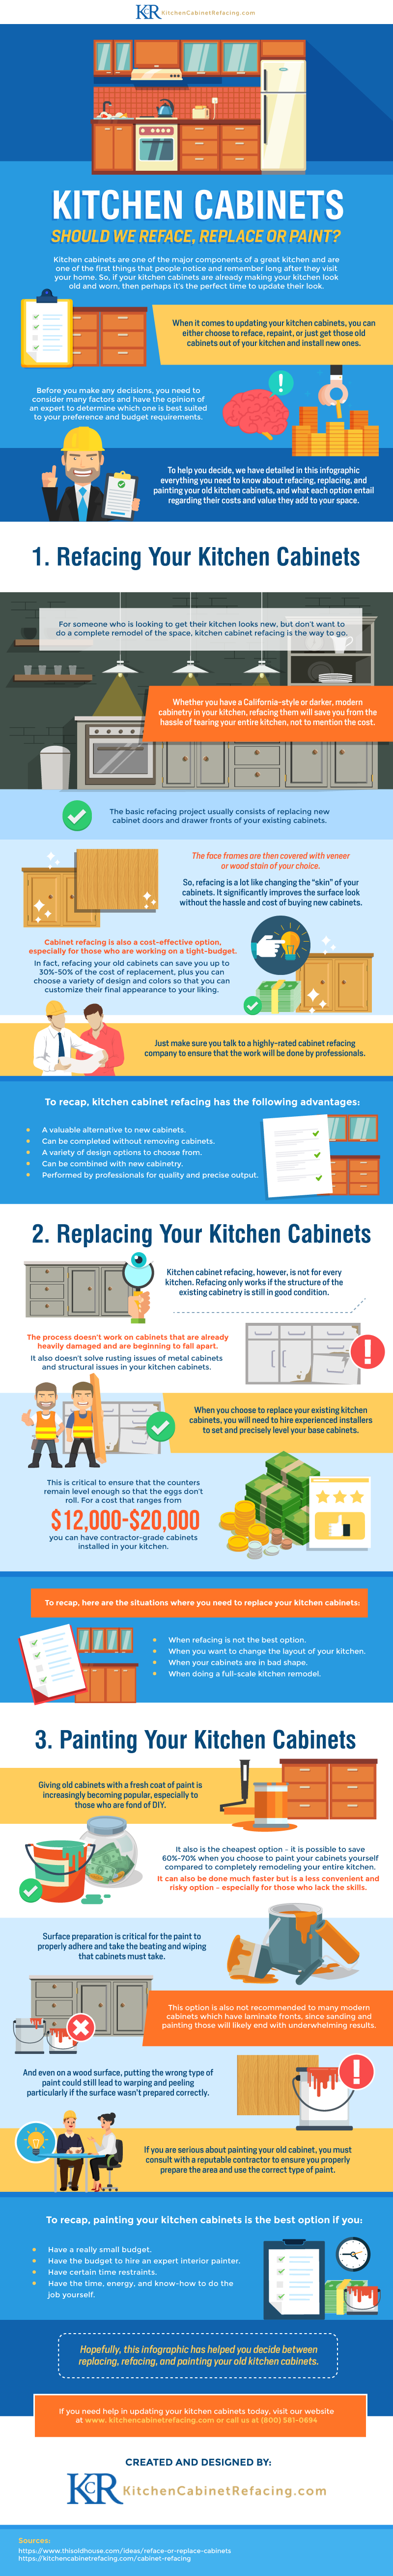 Kitchen-Cabinets-Should-we-Reface-Replace-or-Paint.png